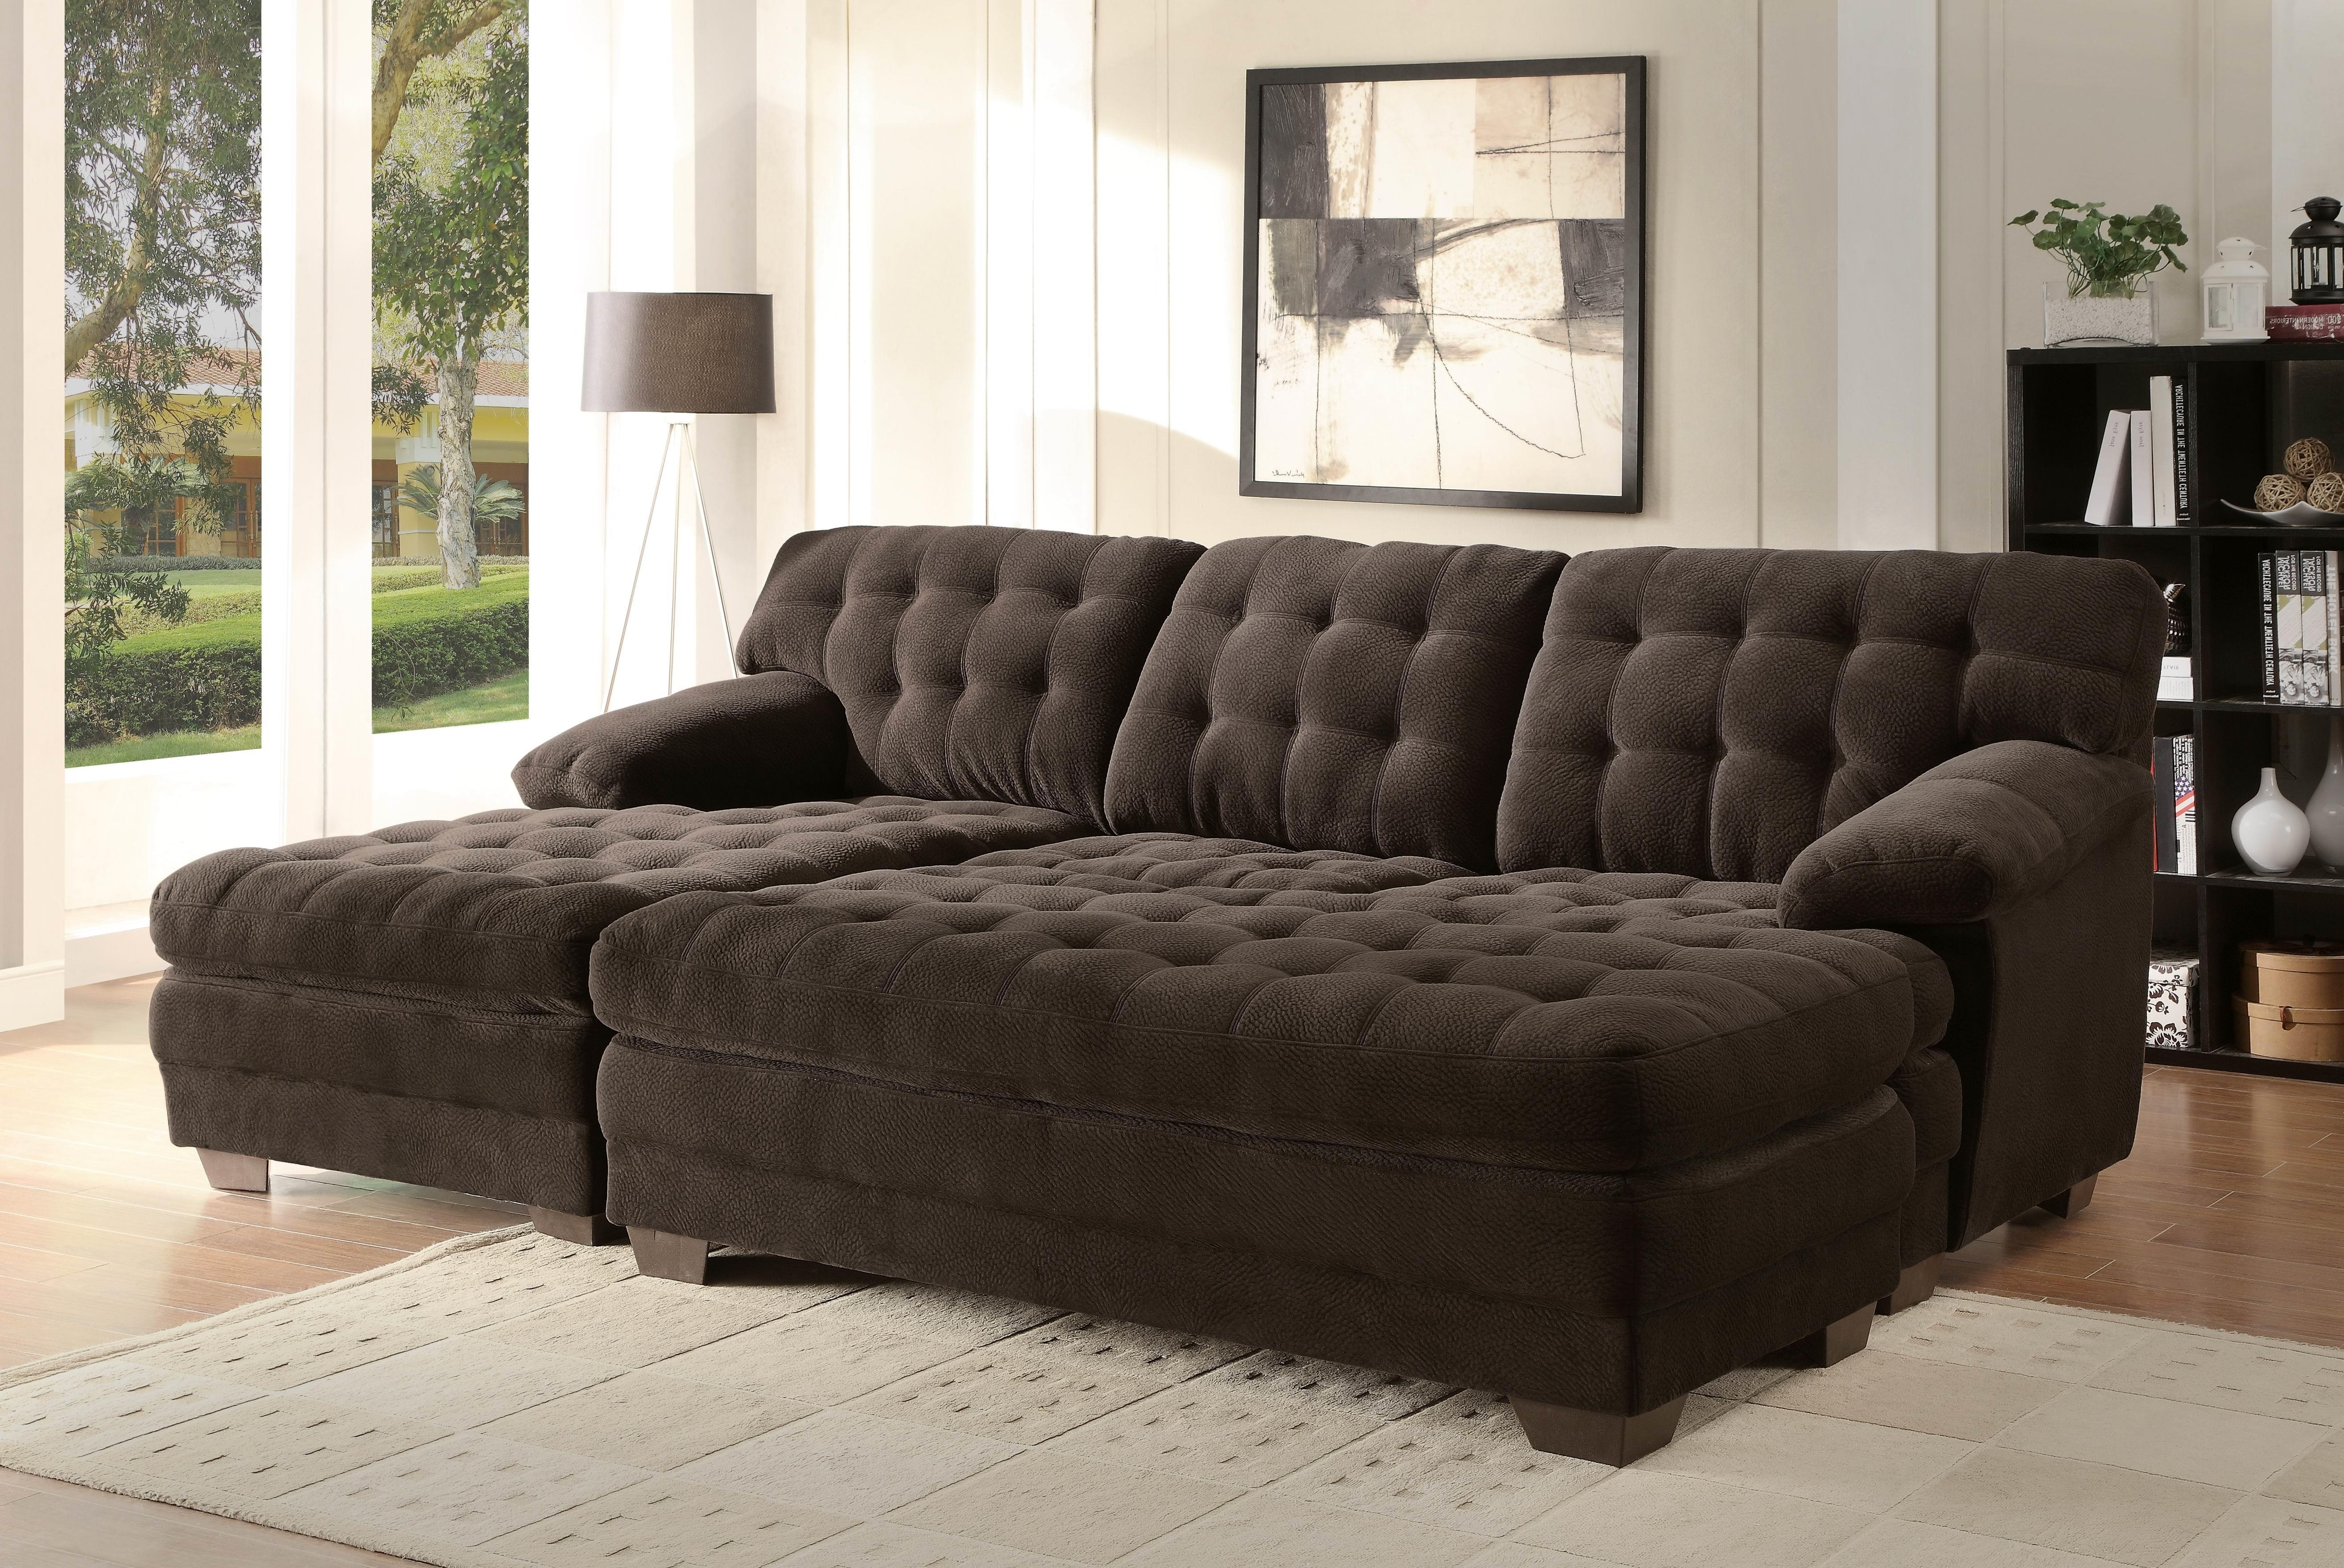 2018 Sofas With Large Ottoman For Sofational Sofas With Ottoman Chaise W Cushion Couch Alfresco (View 4 of 20)